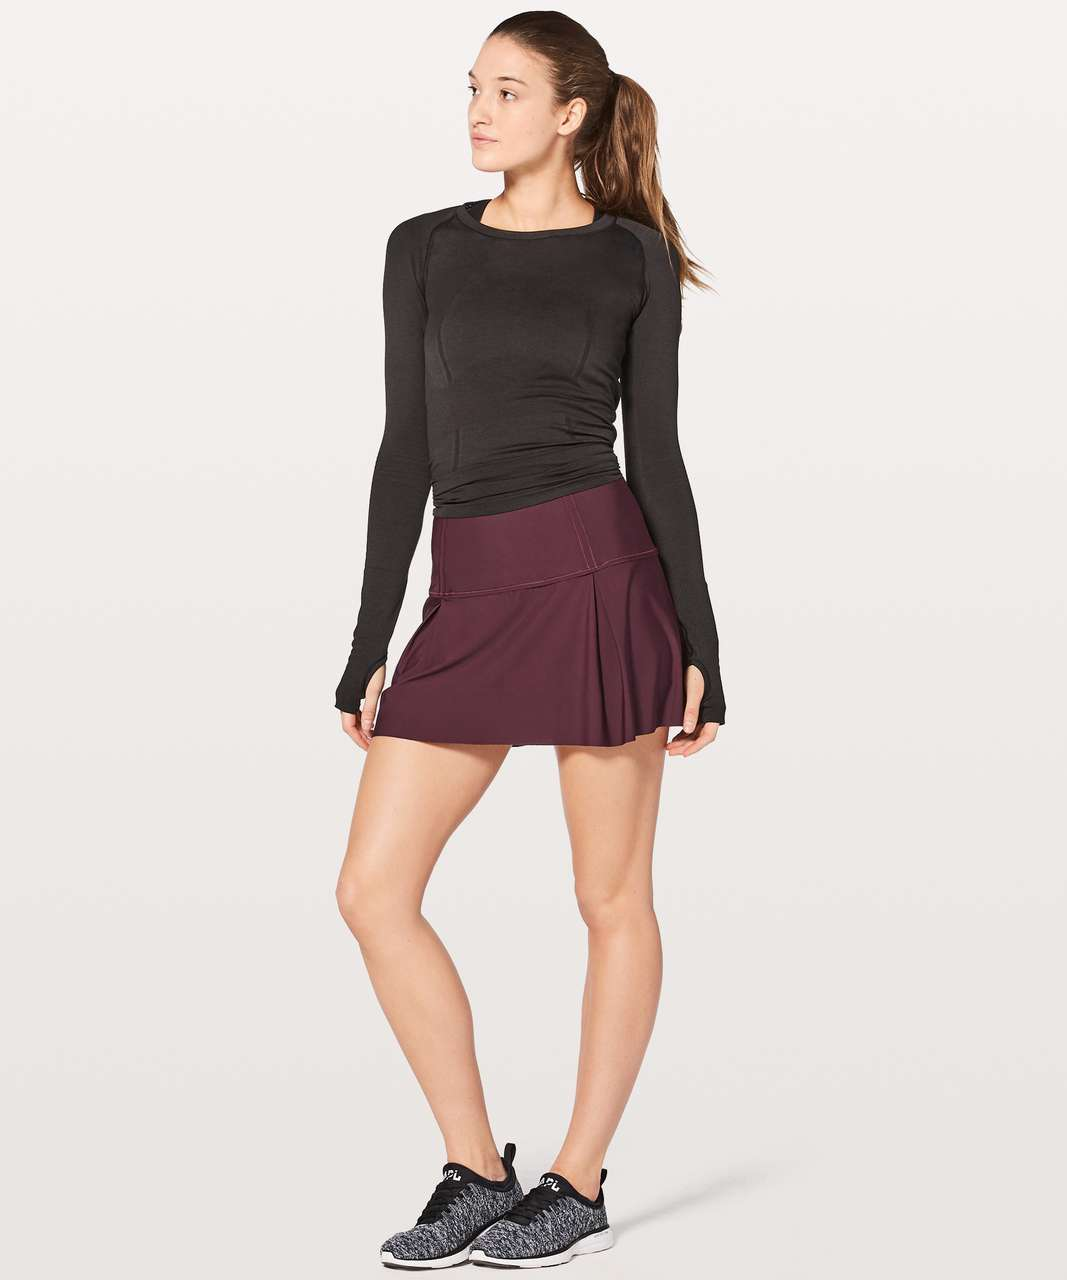 "Lululemon Lost In Pace Skirt (Tall) 15"" - Dark Adobe"